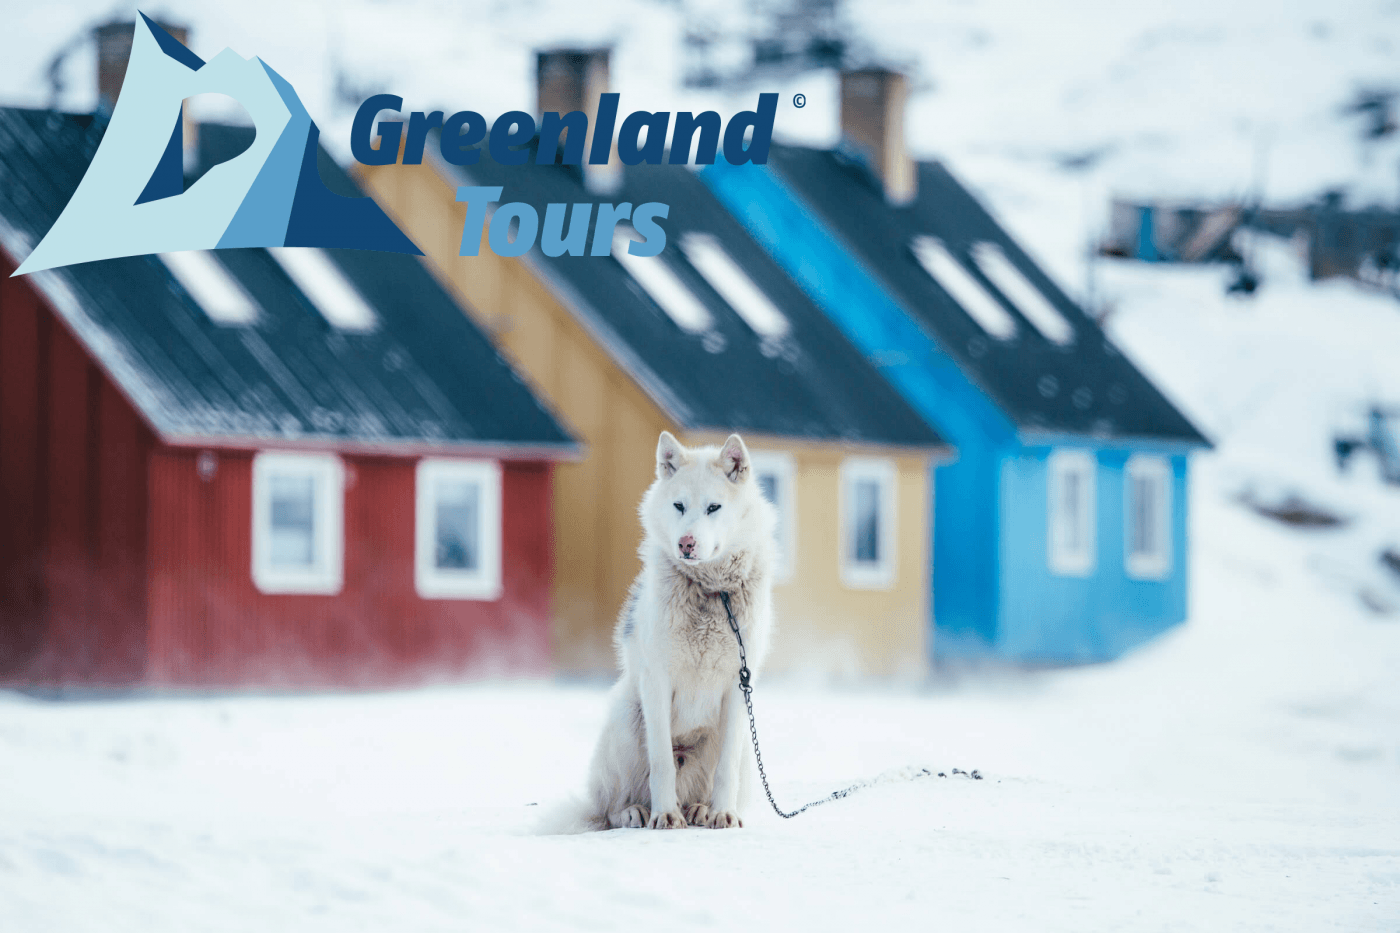 Greenland Tours: Frozen West